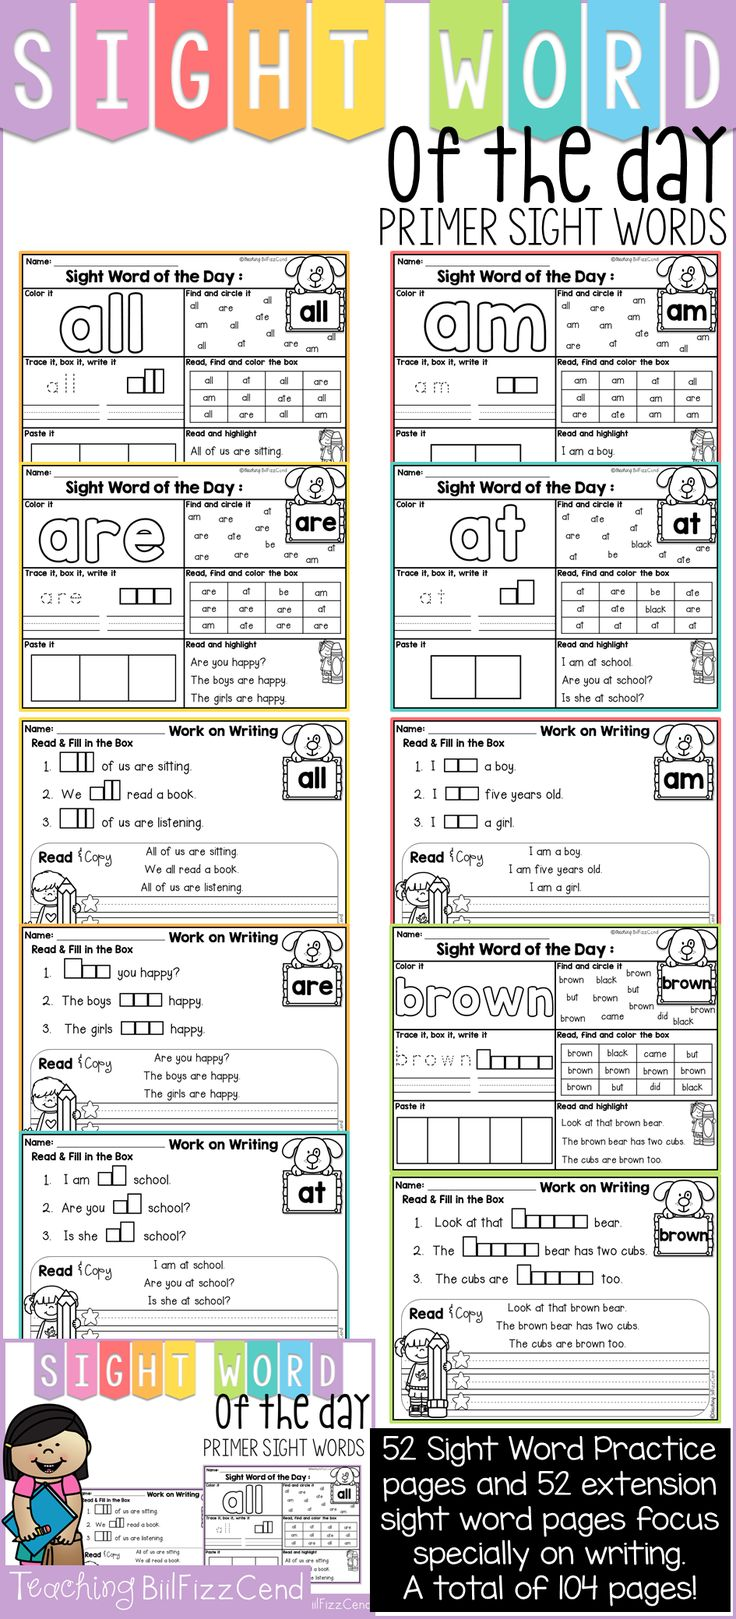 52 sight words practice pages and 52 extension sight word pages focuses specially on writing. Your students will love and master these sight words pages! Total of 104 sight word practice page!! Over 150 SENTENCE FOR FLUENCY!